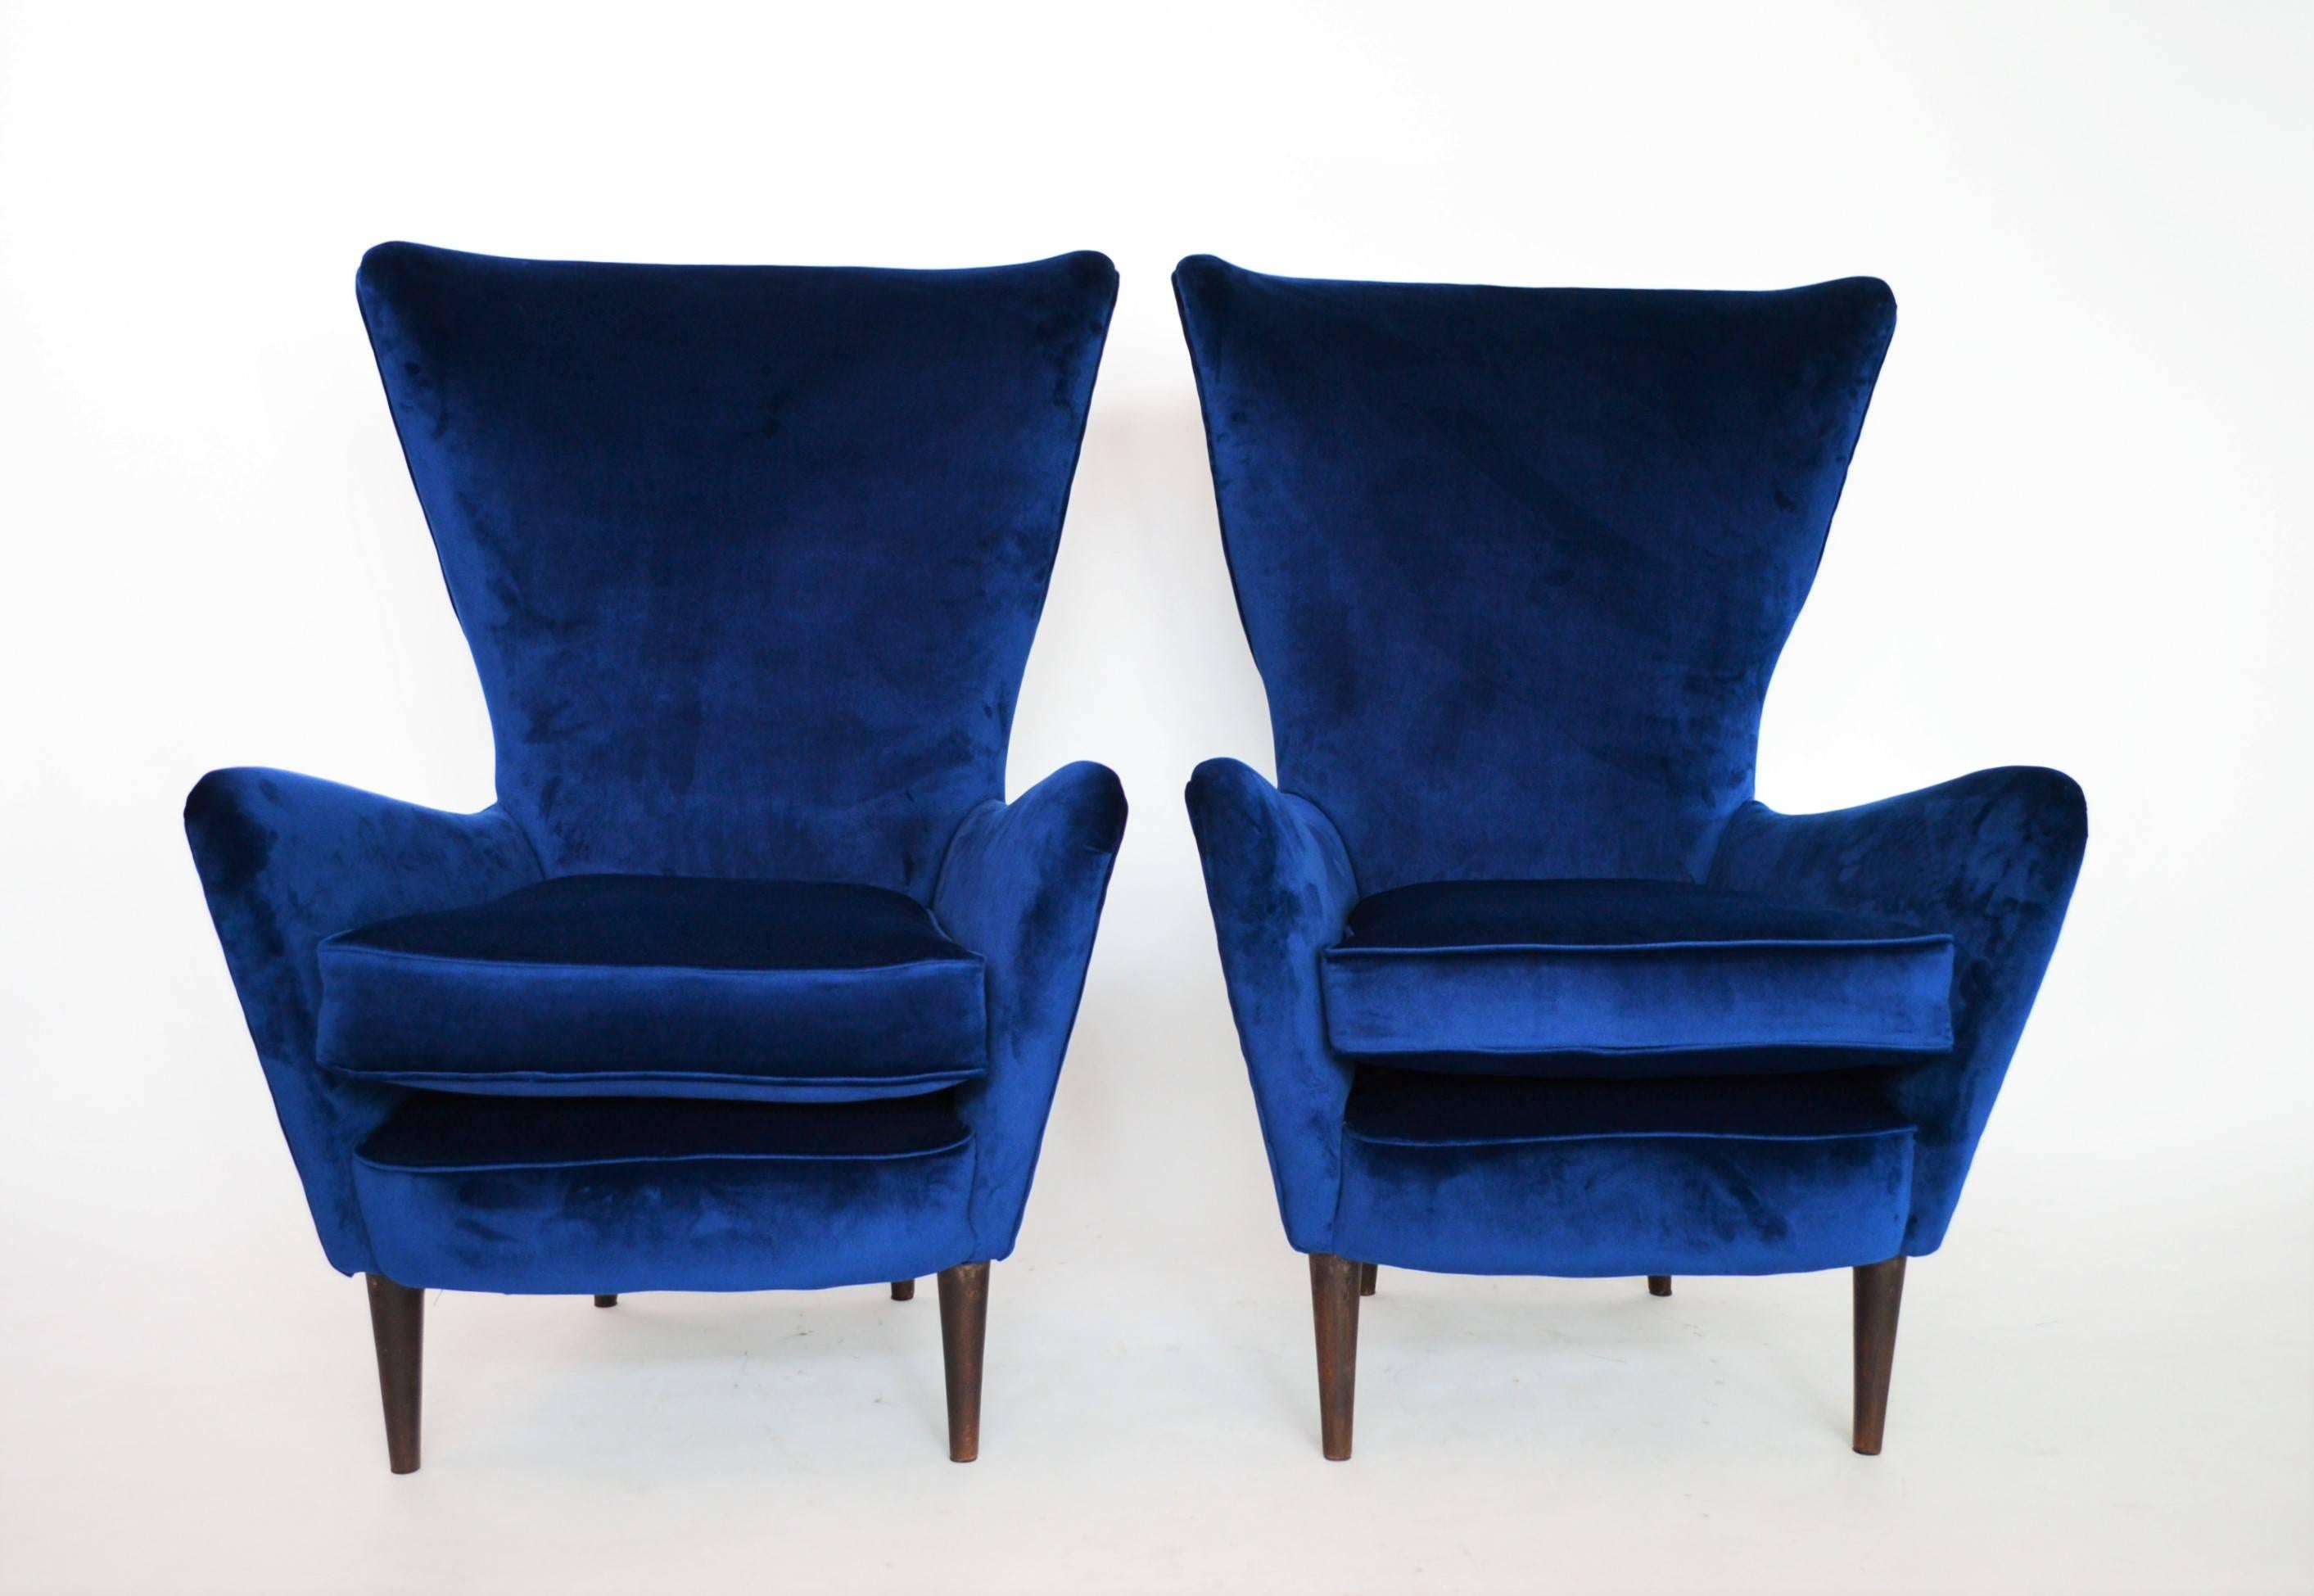 Royal Blue Chair Italian Lounge Chairs Restored With Royal Blue Velvet 1950s